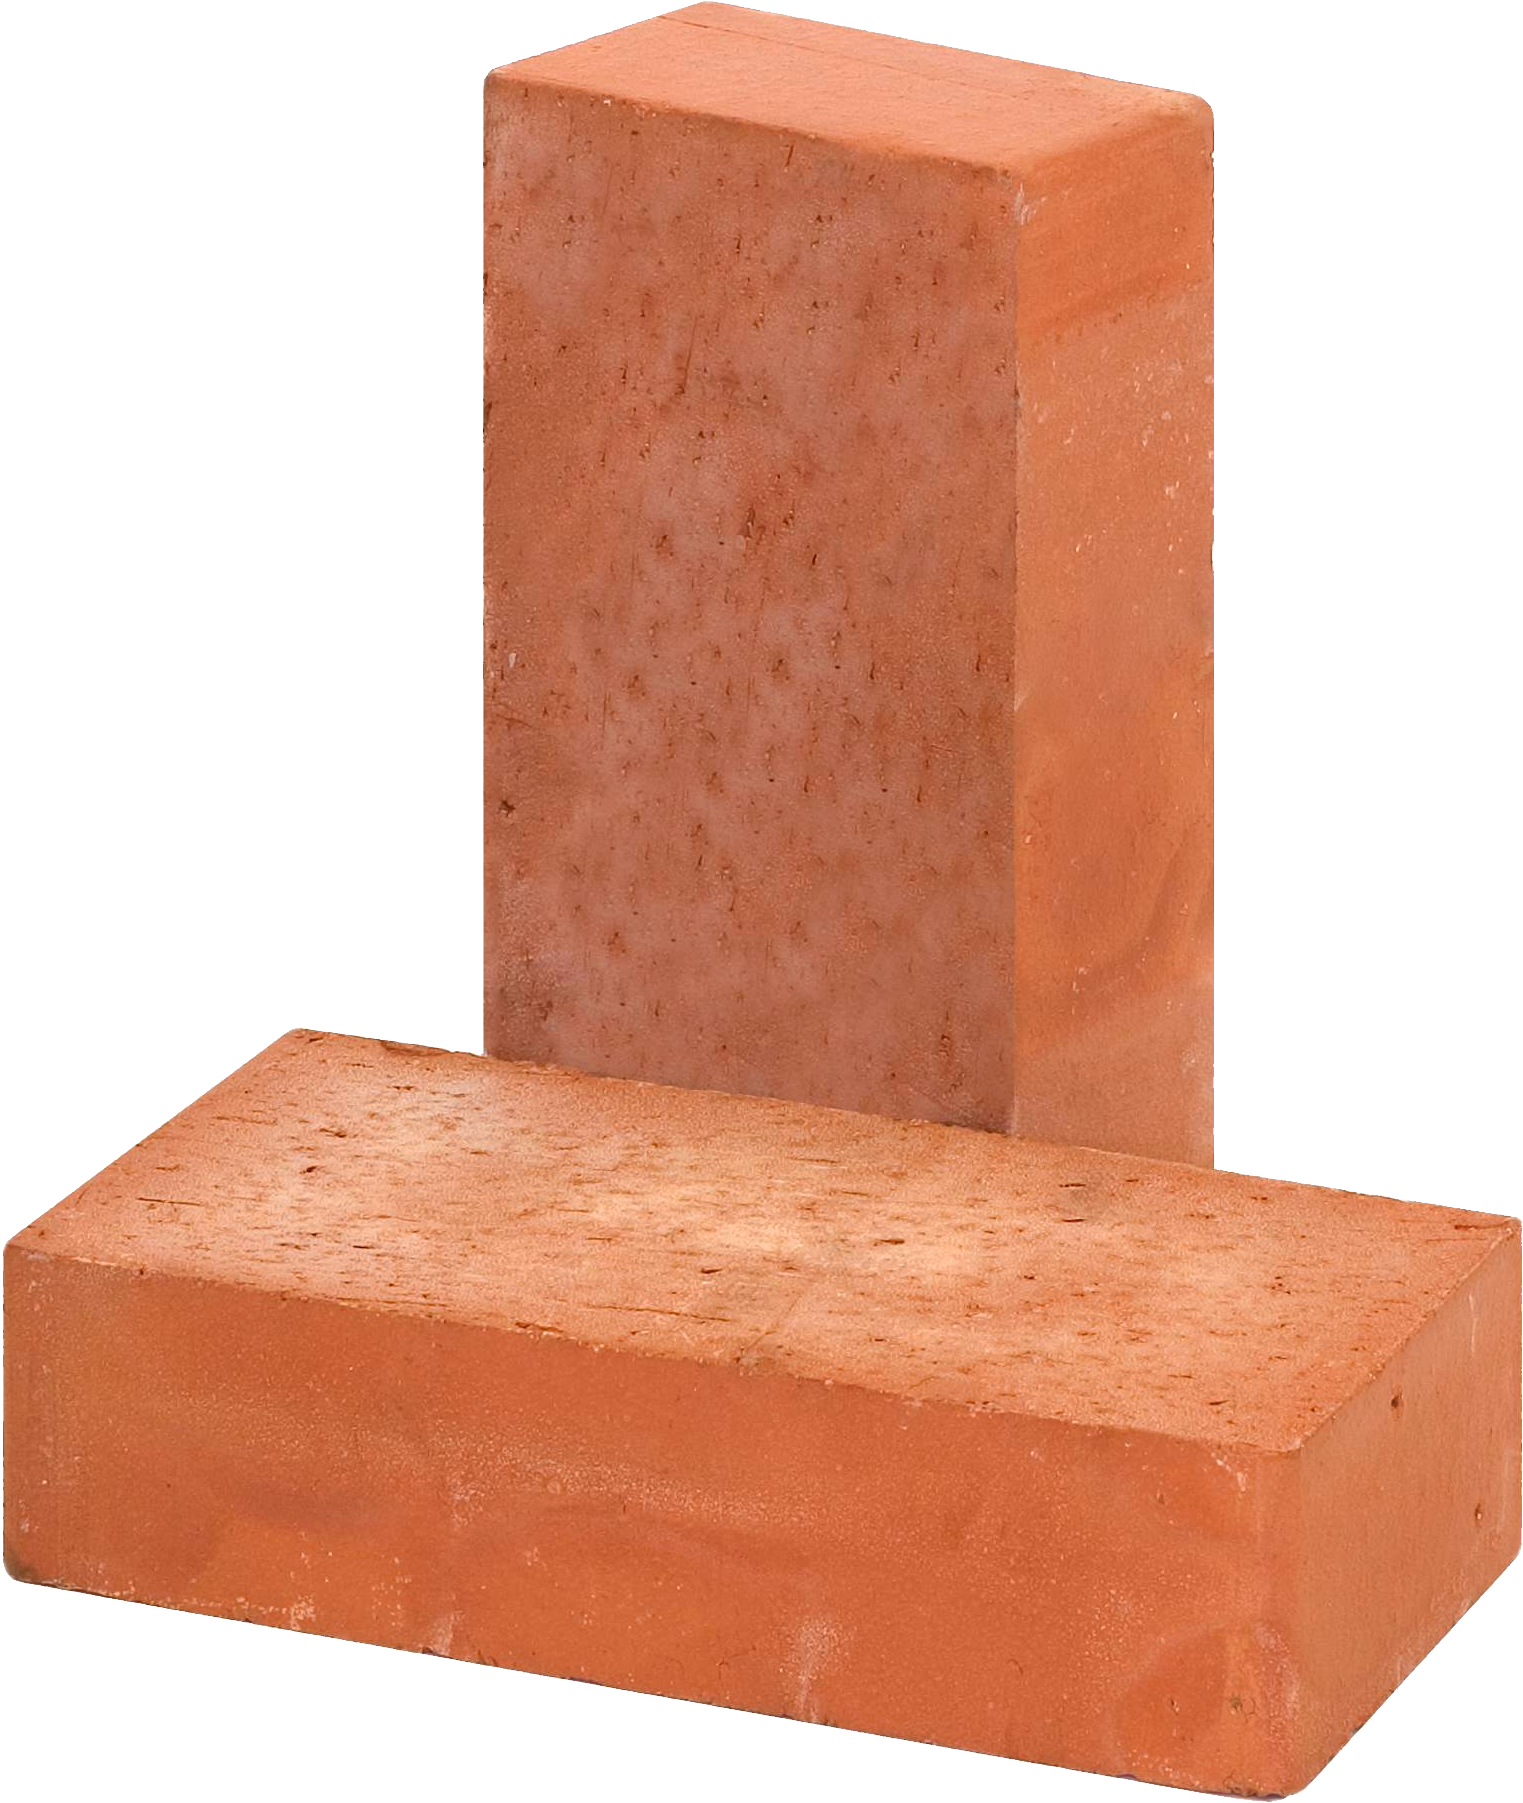 brick building png